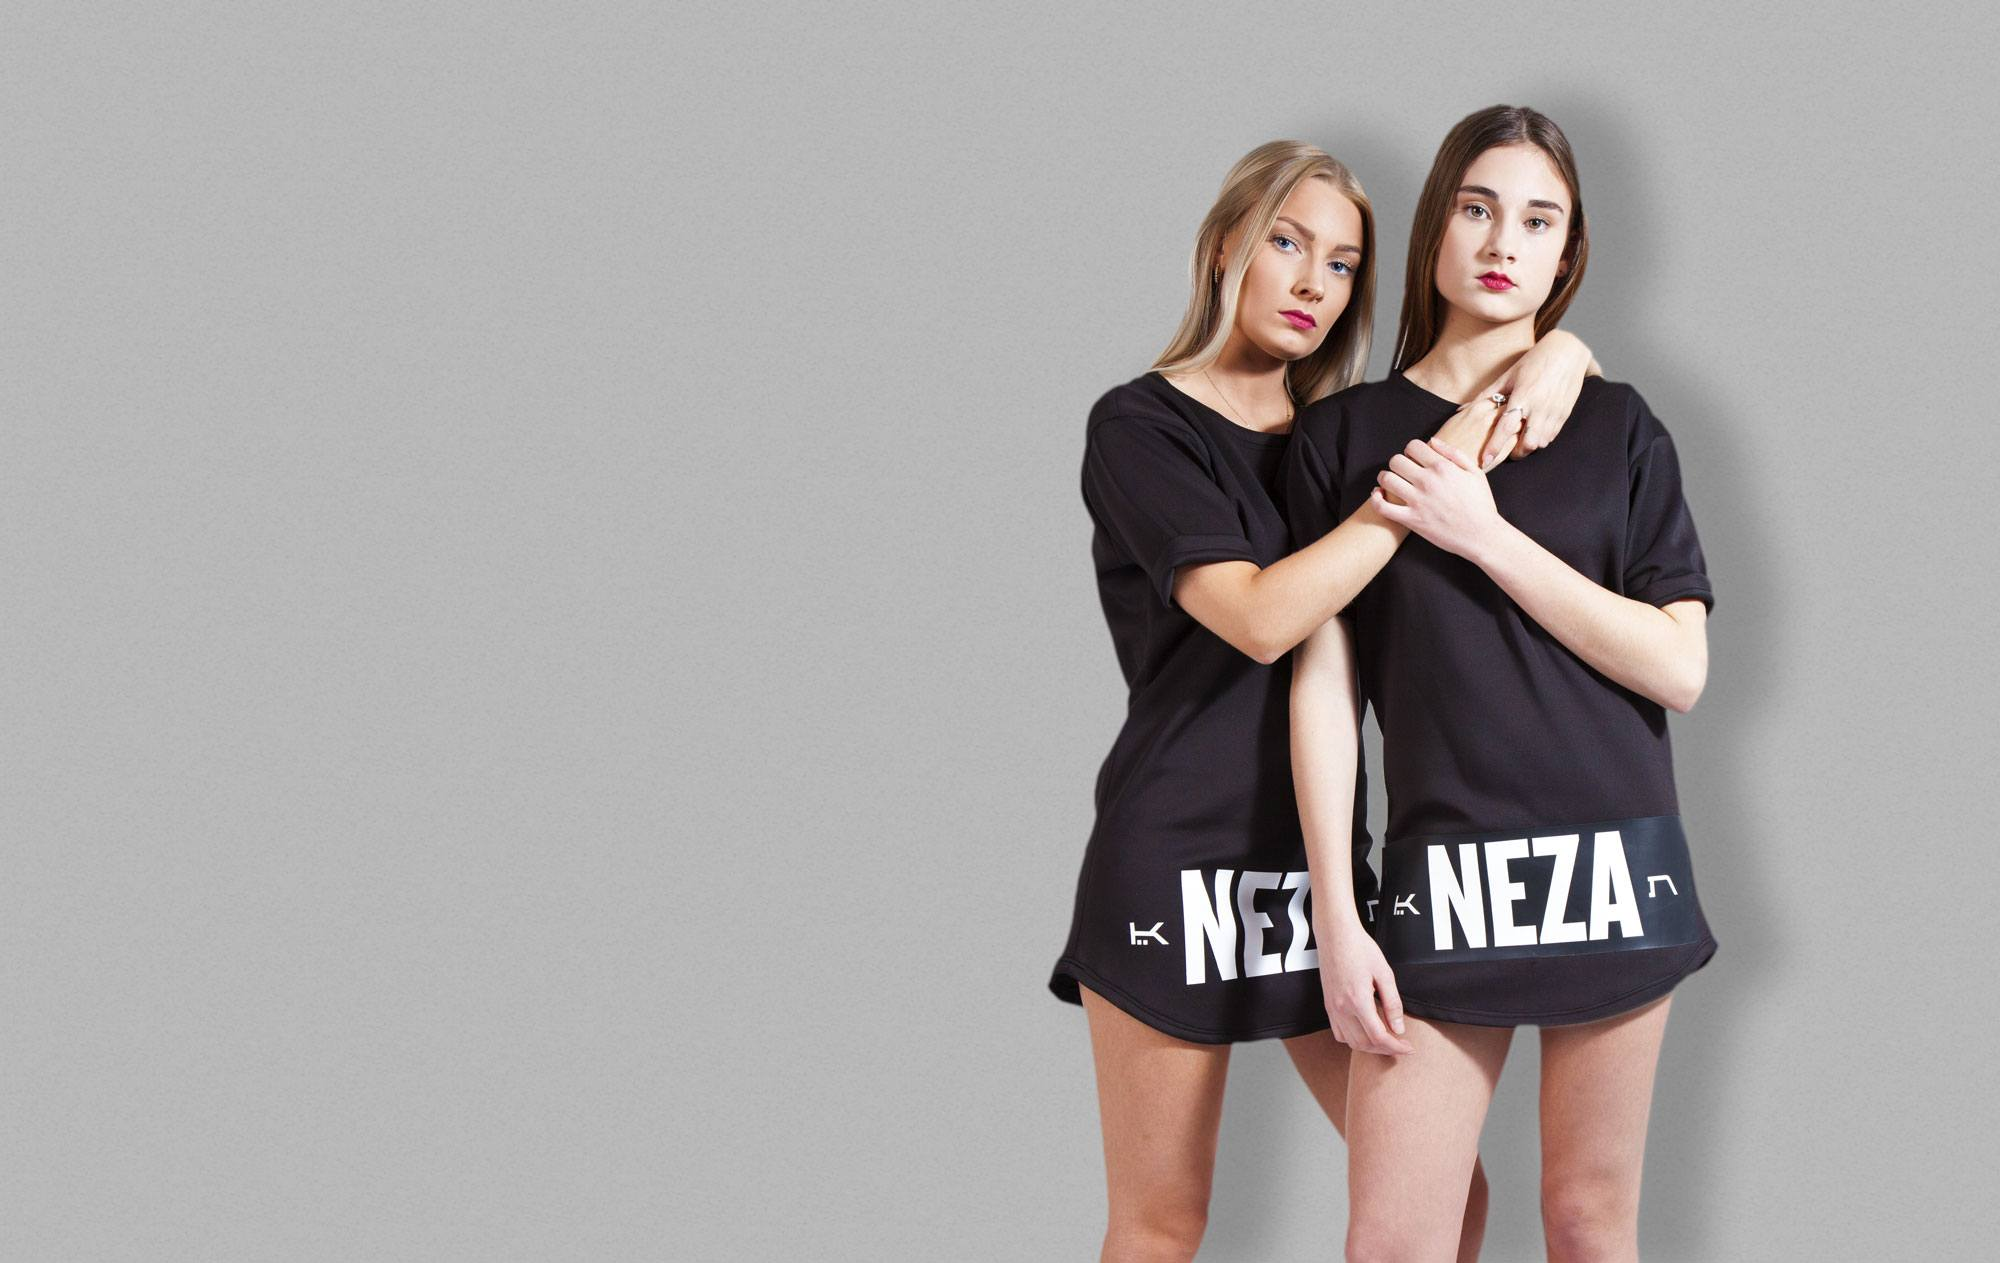 Two women in black t-shirts from KOMERA NEZA dance school